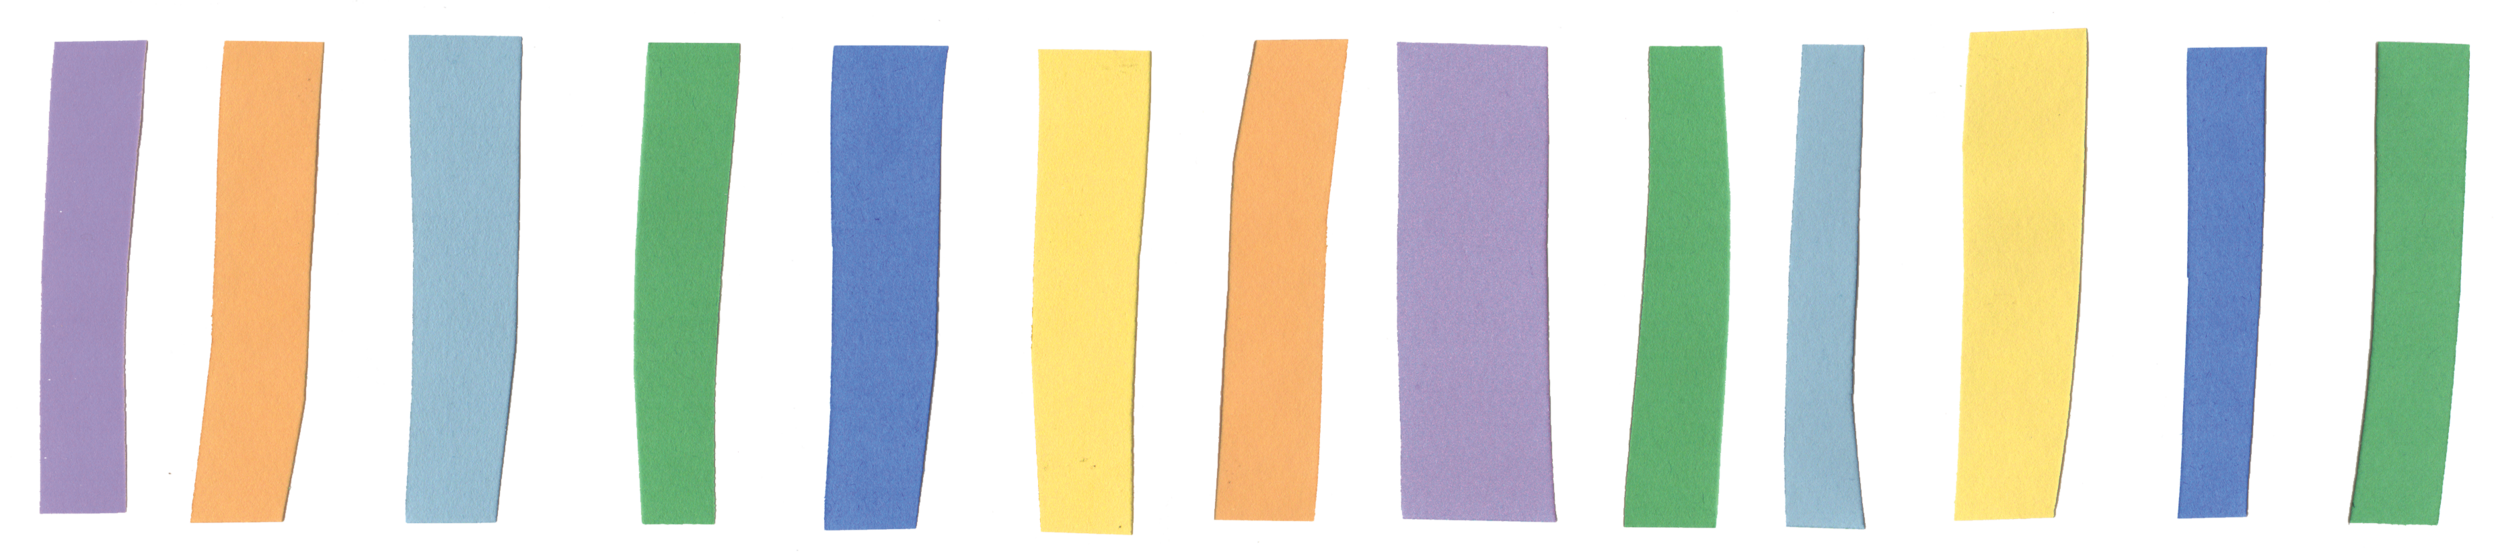 color_bars_A.png